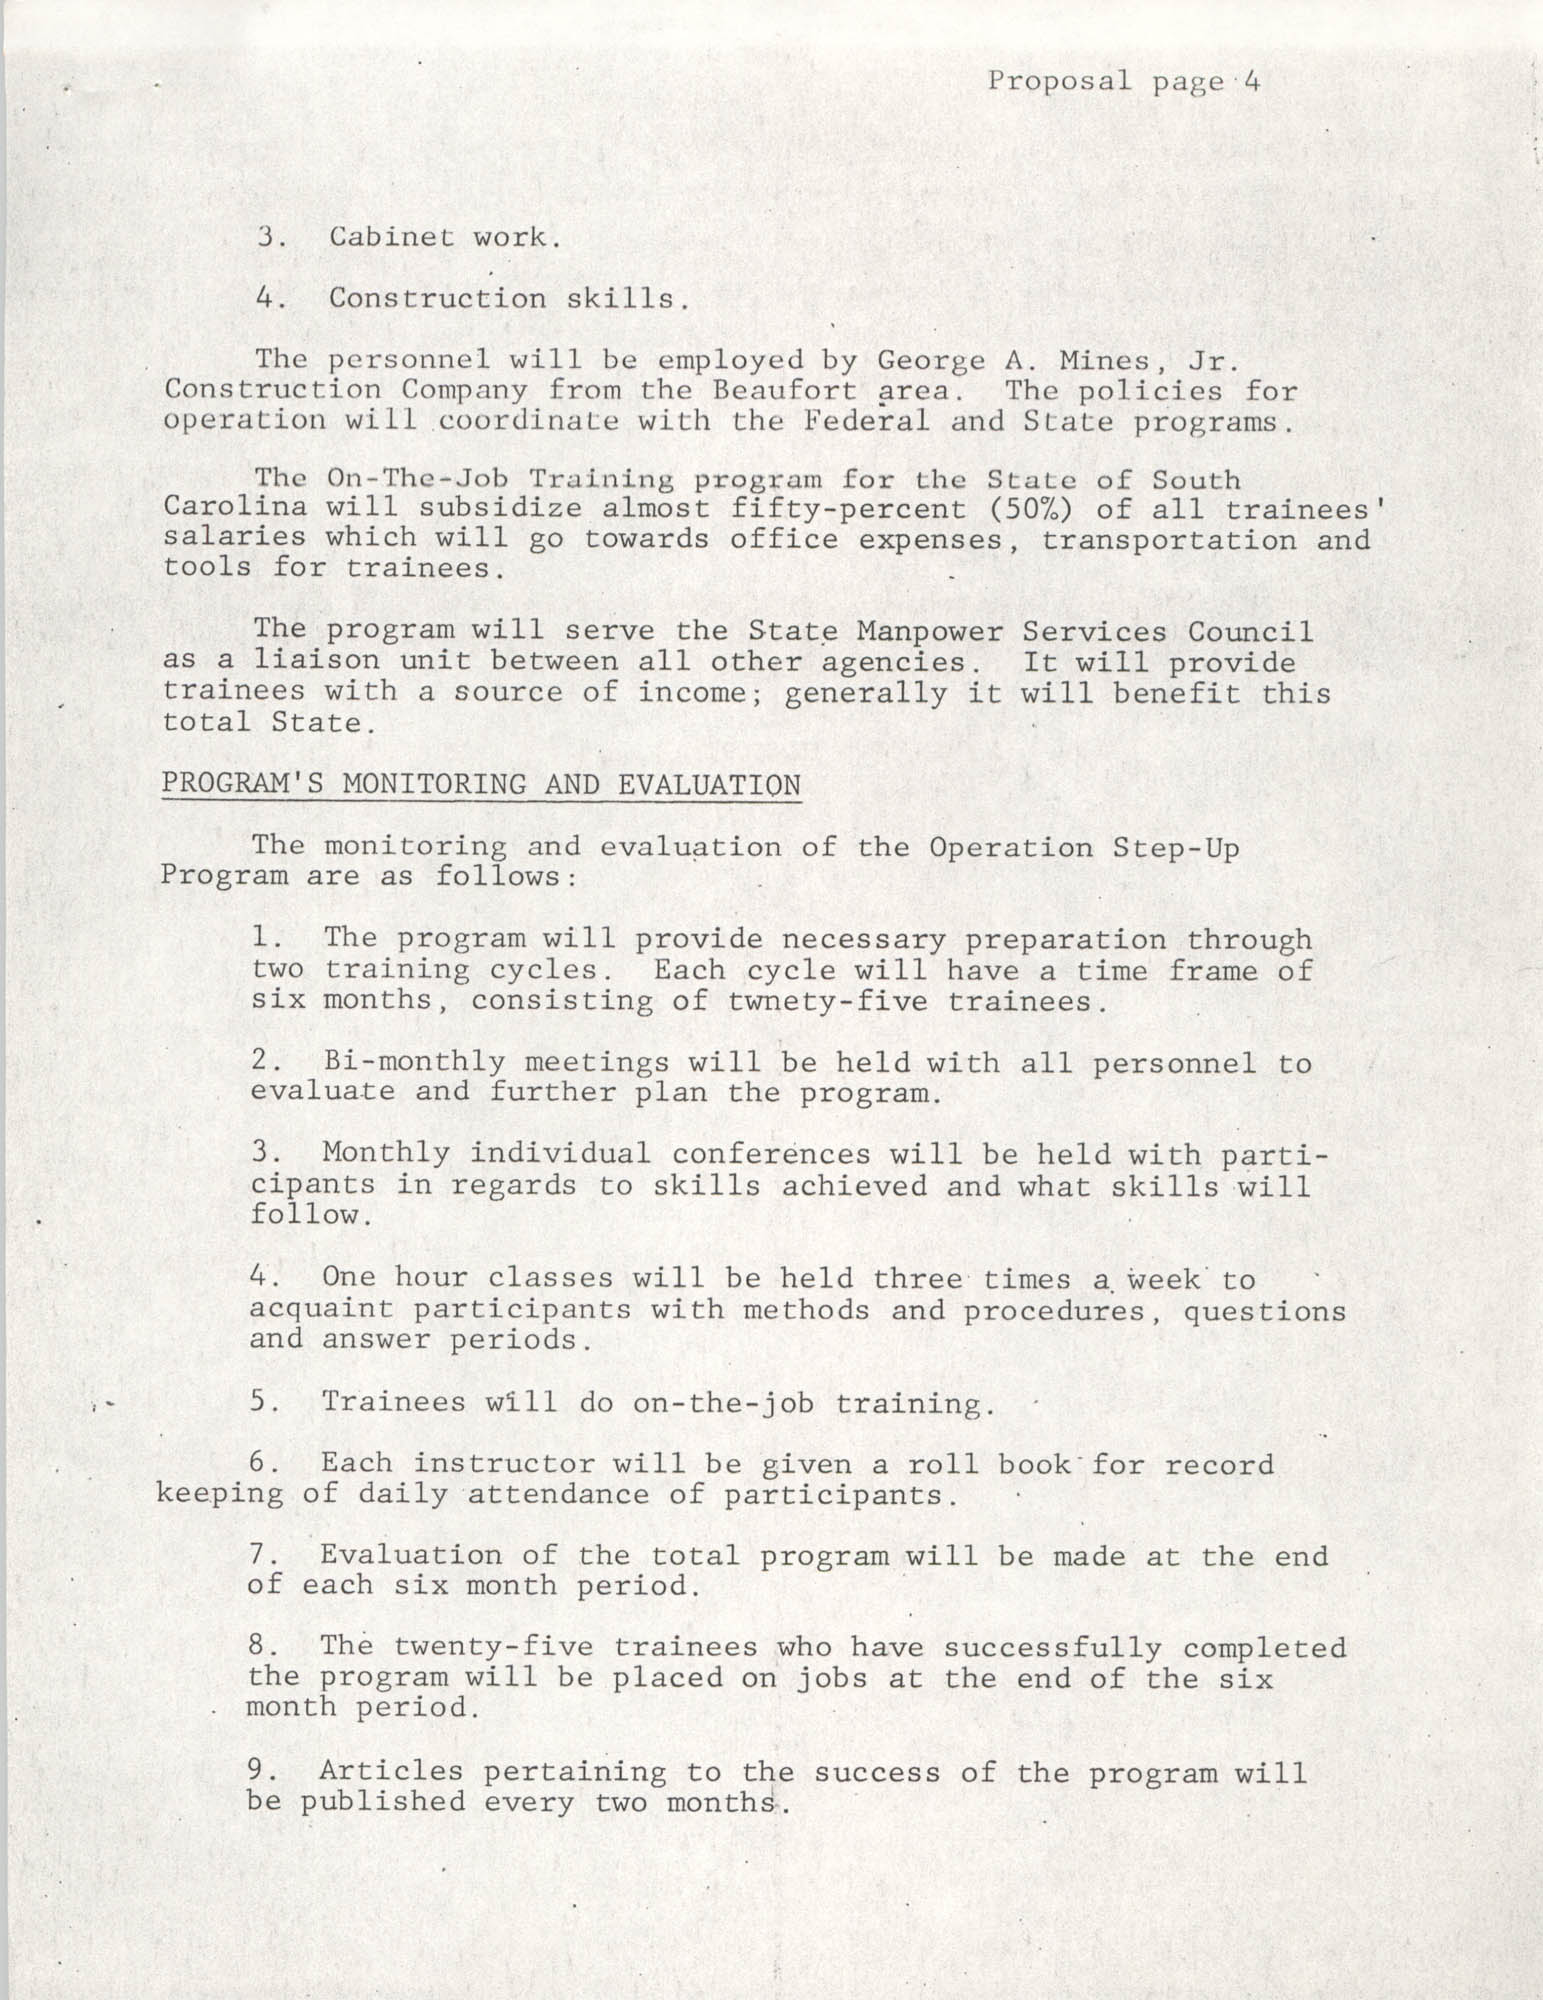 Operation Step-up, Proposal, Page 4